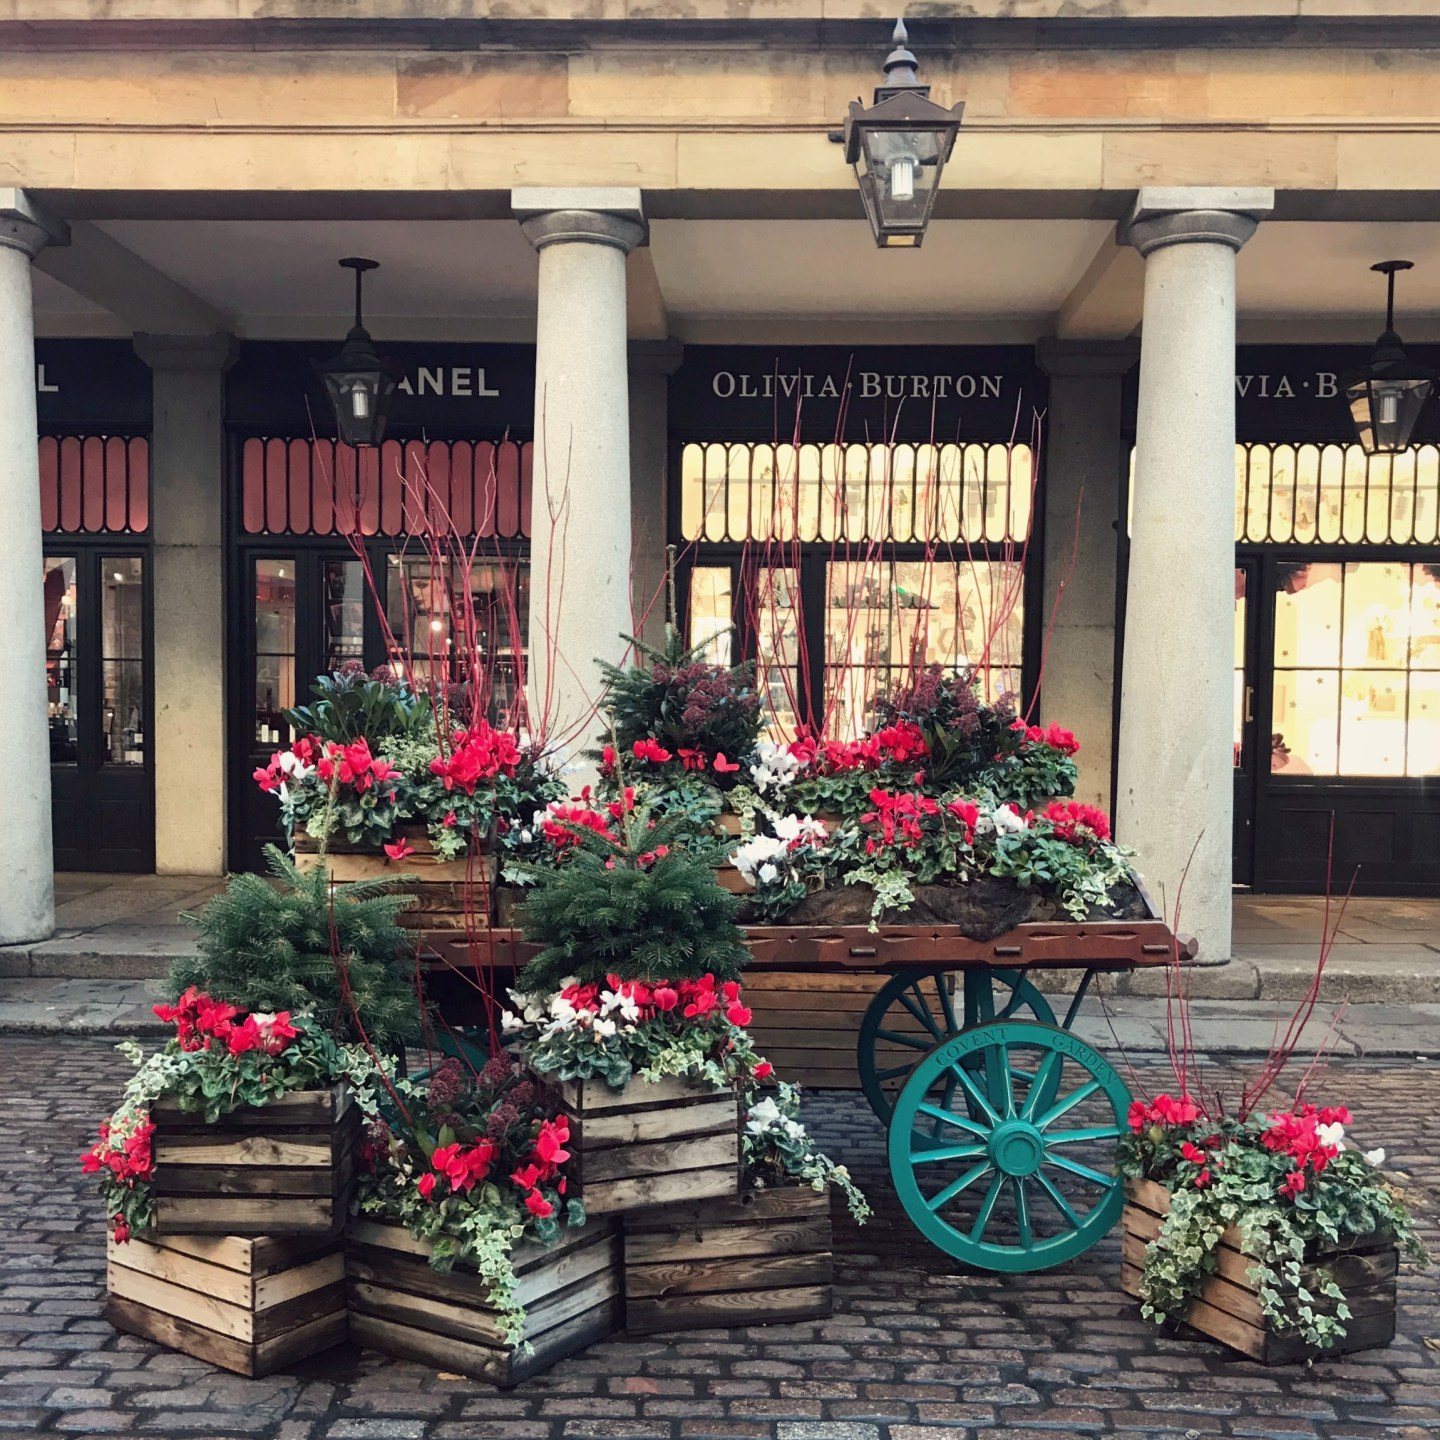 Covent Garden Christmas Photo Walk - Where to Get Those Festive Instagram Snaps!